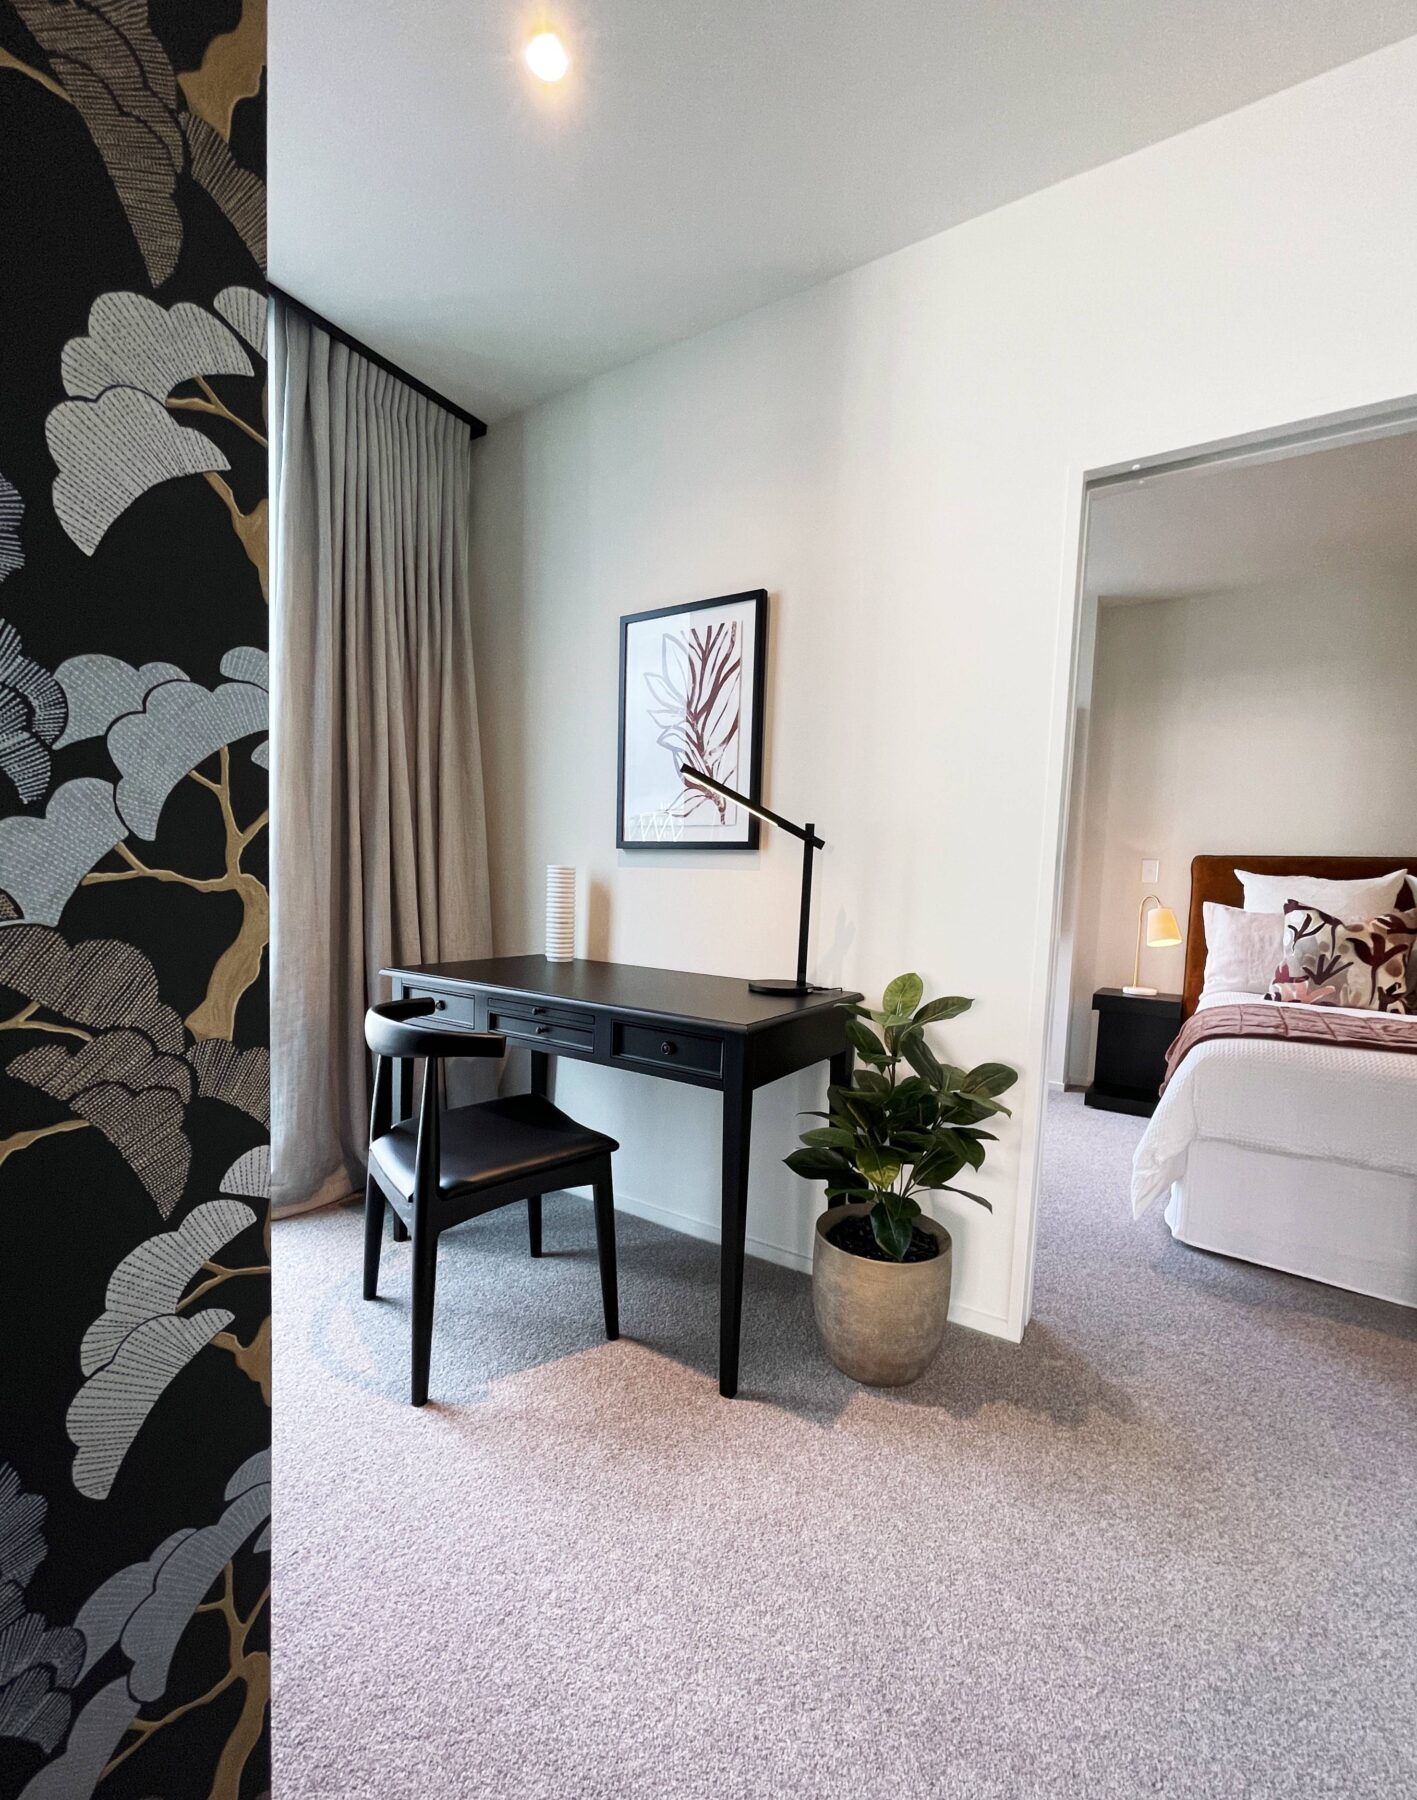 luxury apartment office space, with patterned feature wallpaper, black desk and chair, work from home space